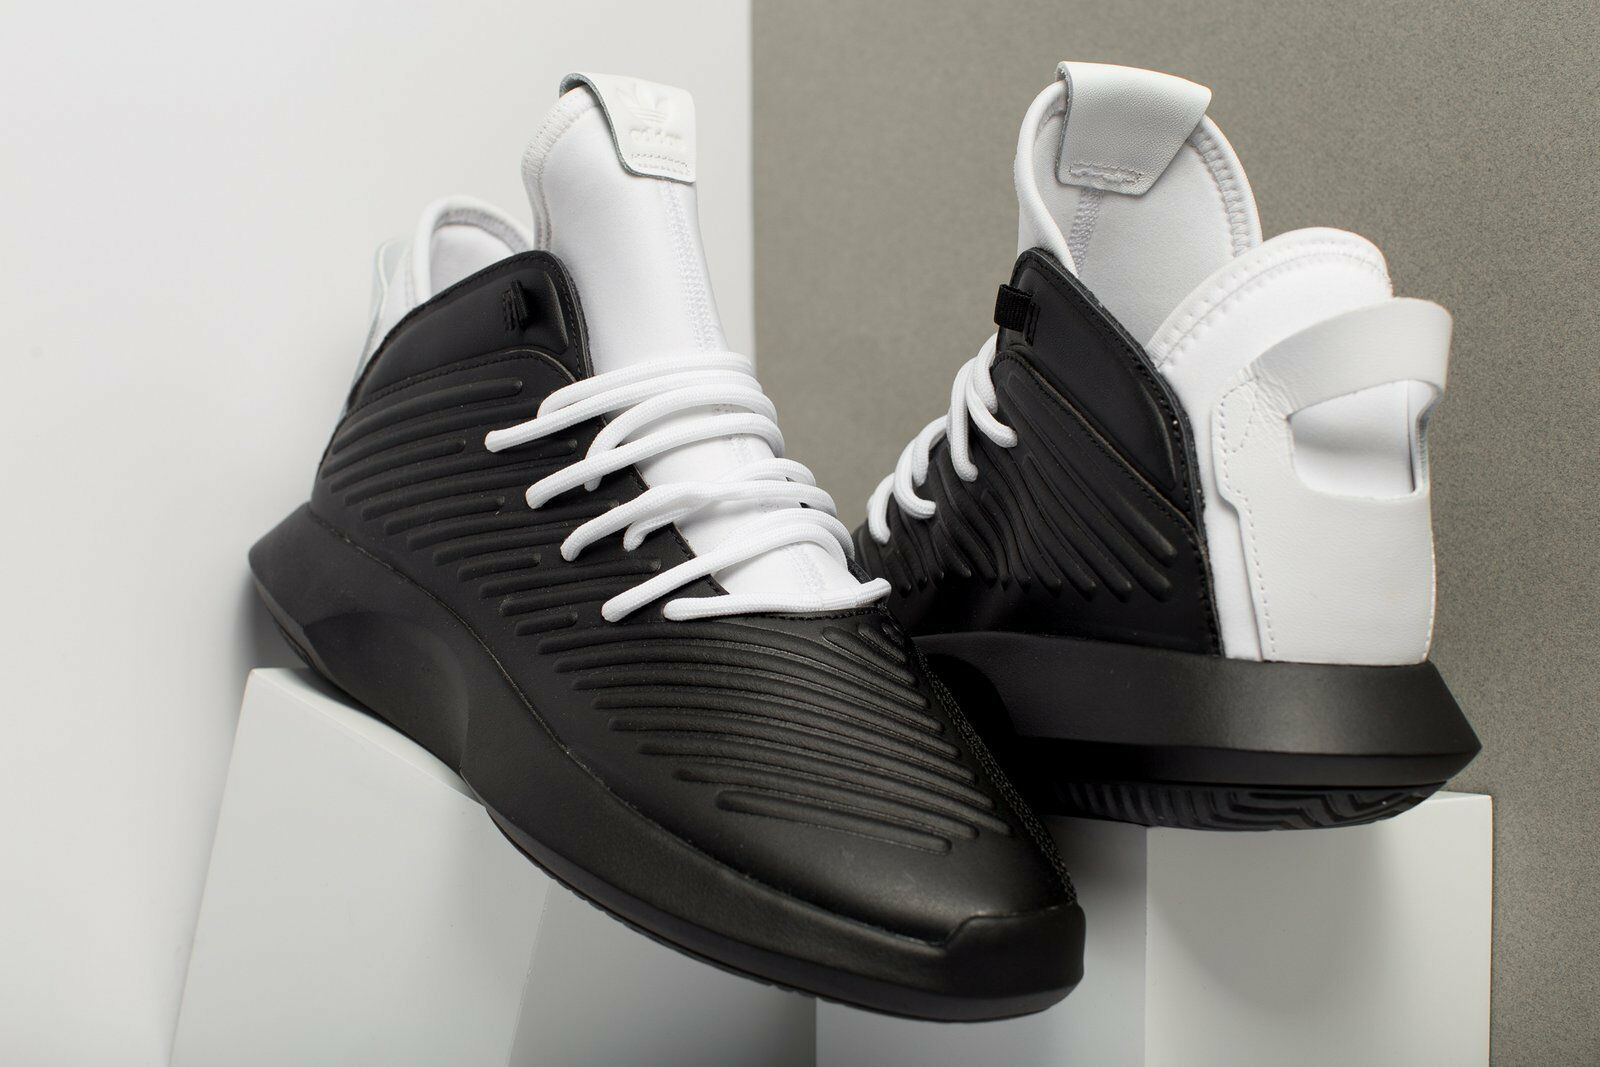 Adidas Originals Crazy 1 Adv Black White Basketball Leather Men New shoes AQ0321